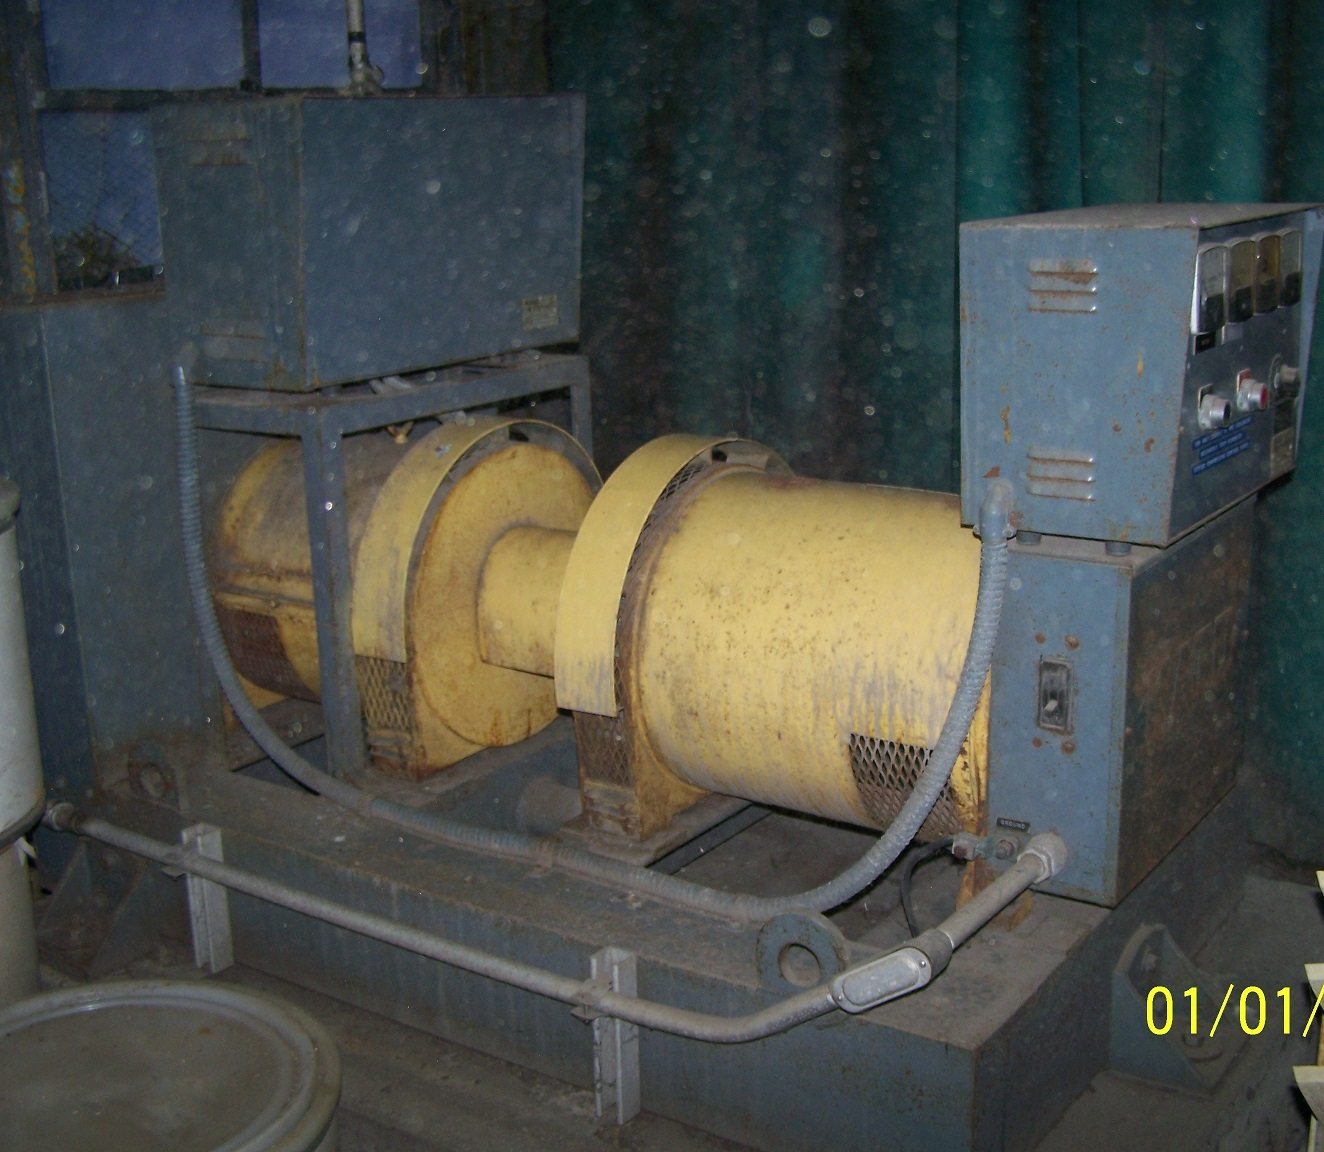 LIQUIDATION* Kato Engineering AC generator, model 3EX9E, type 1484.  3 KW, 3.75 KVA, 115 Volt, single phase, 32.6 Amp, 1800 RPM.